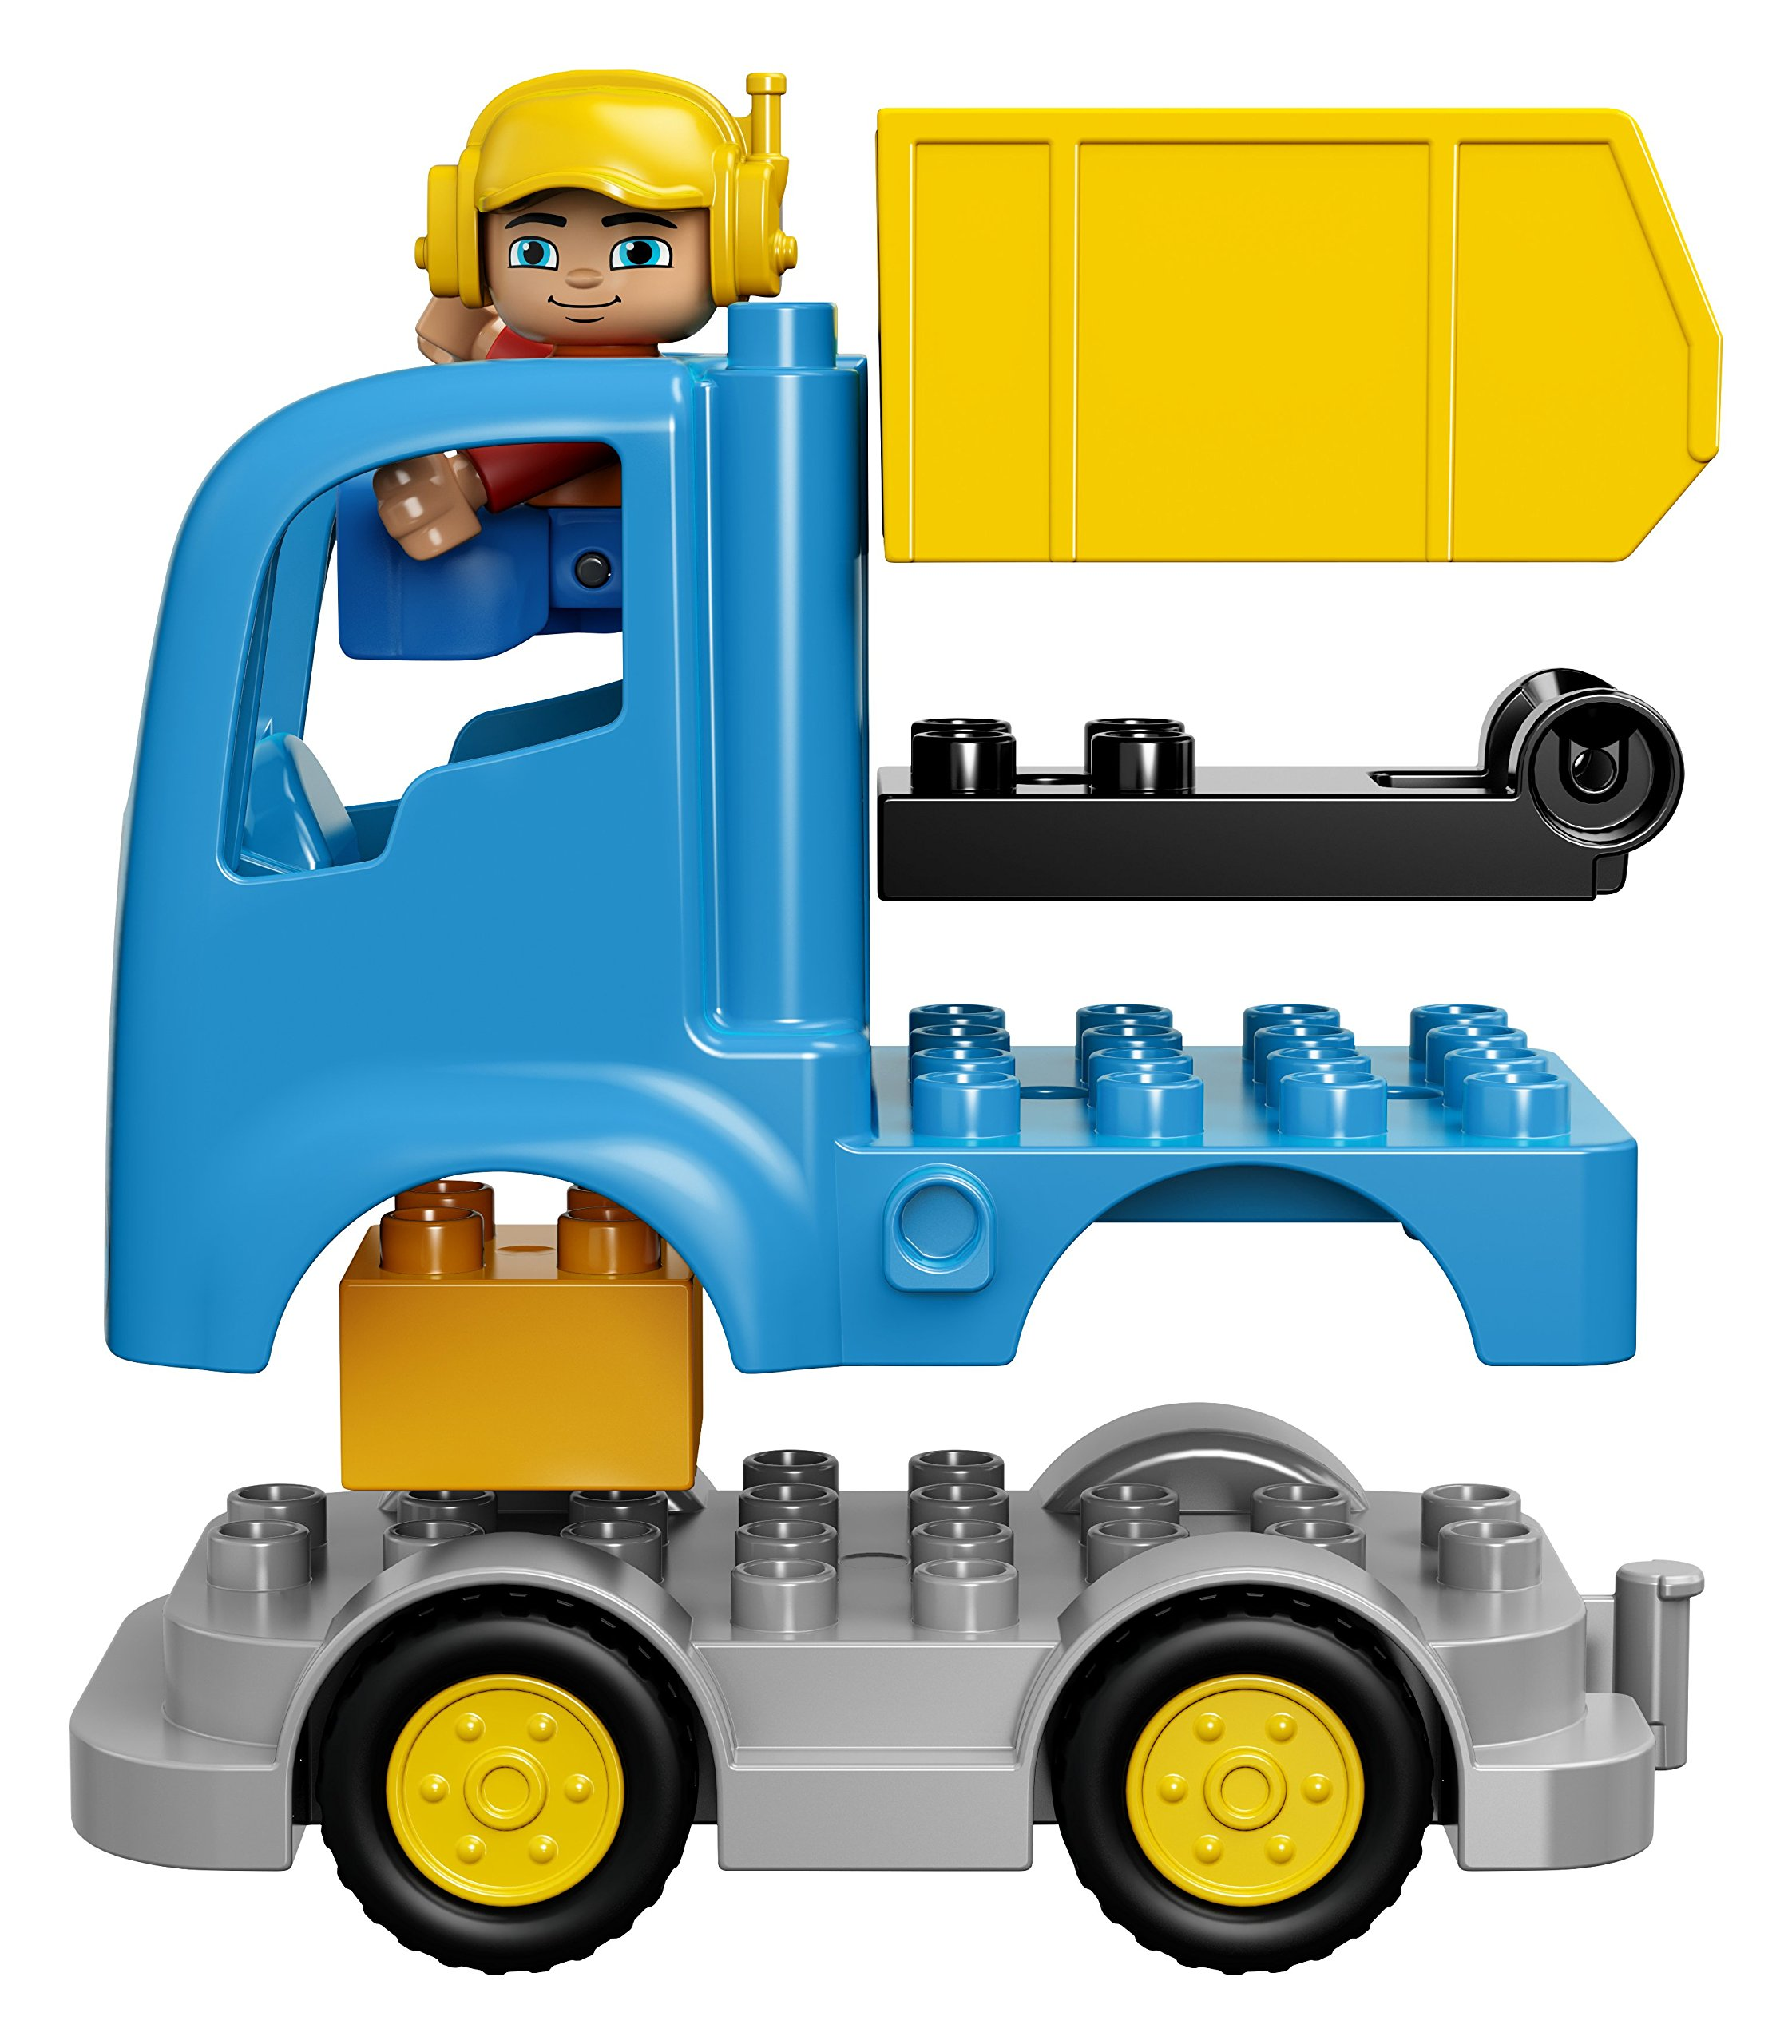 LEGO DUPLO Town Toddler Truck Toy by LEGO (Image #6)